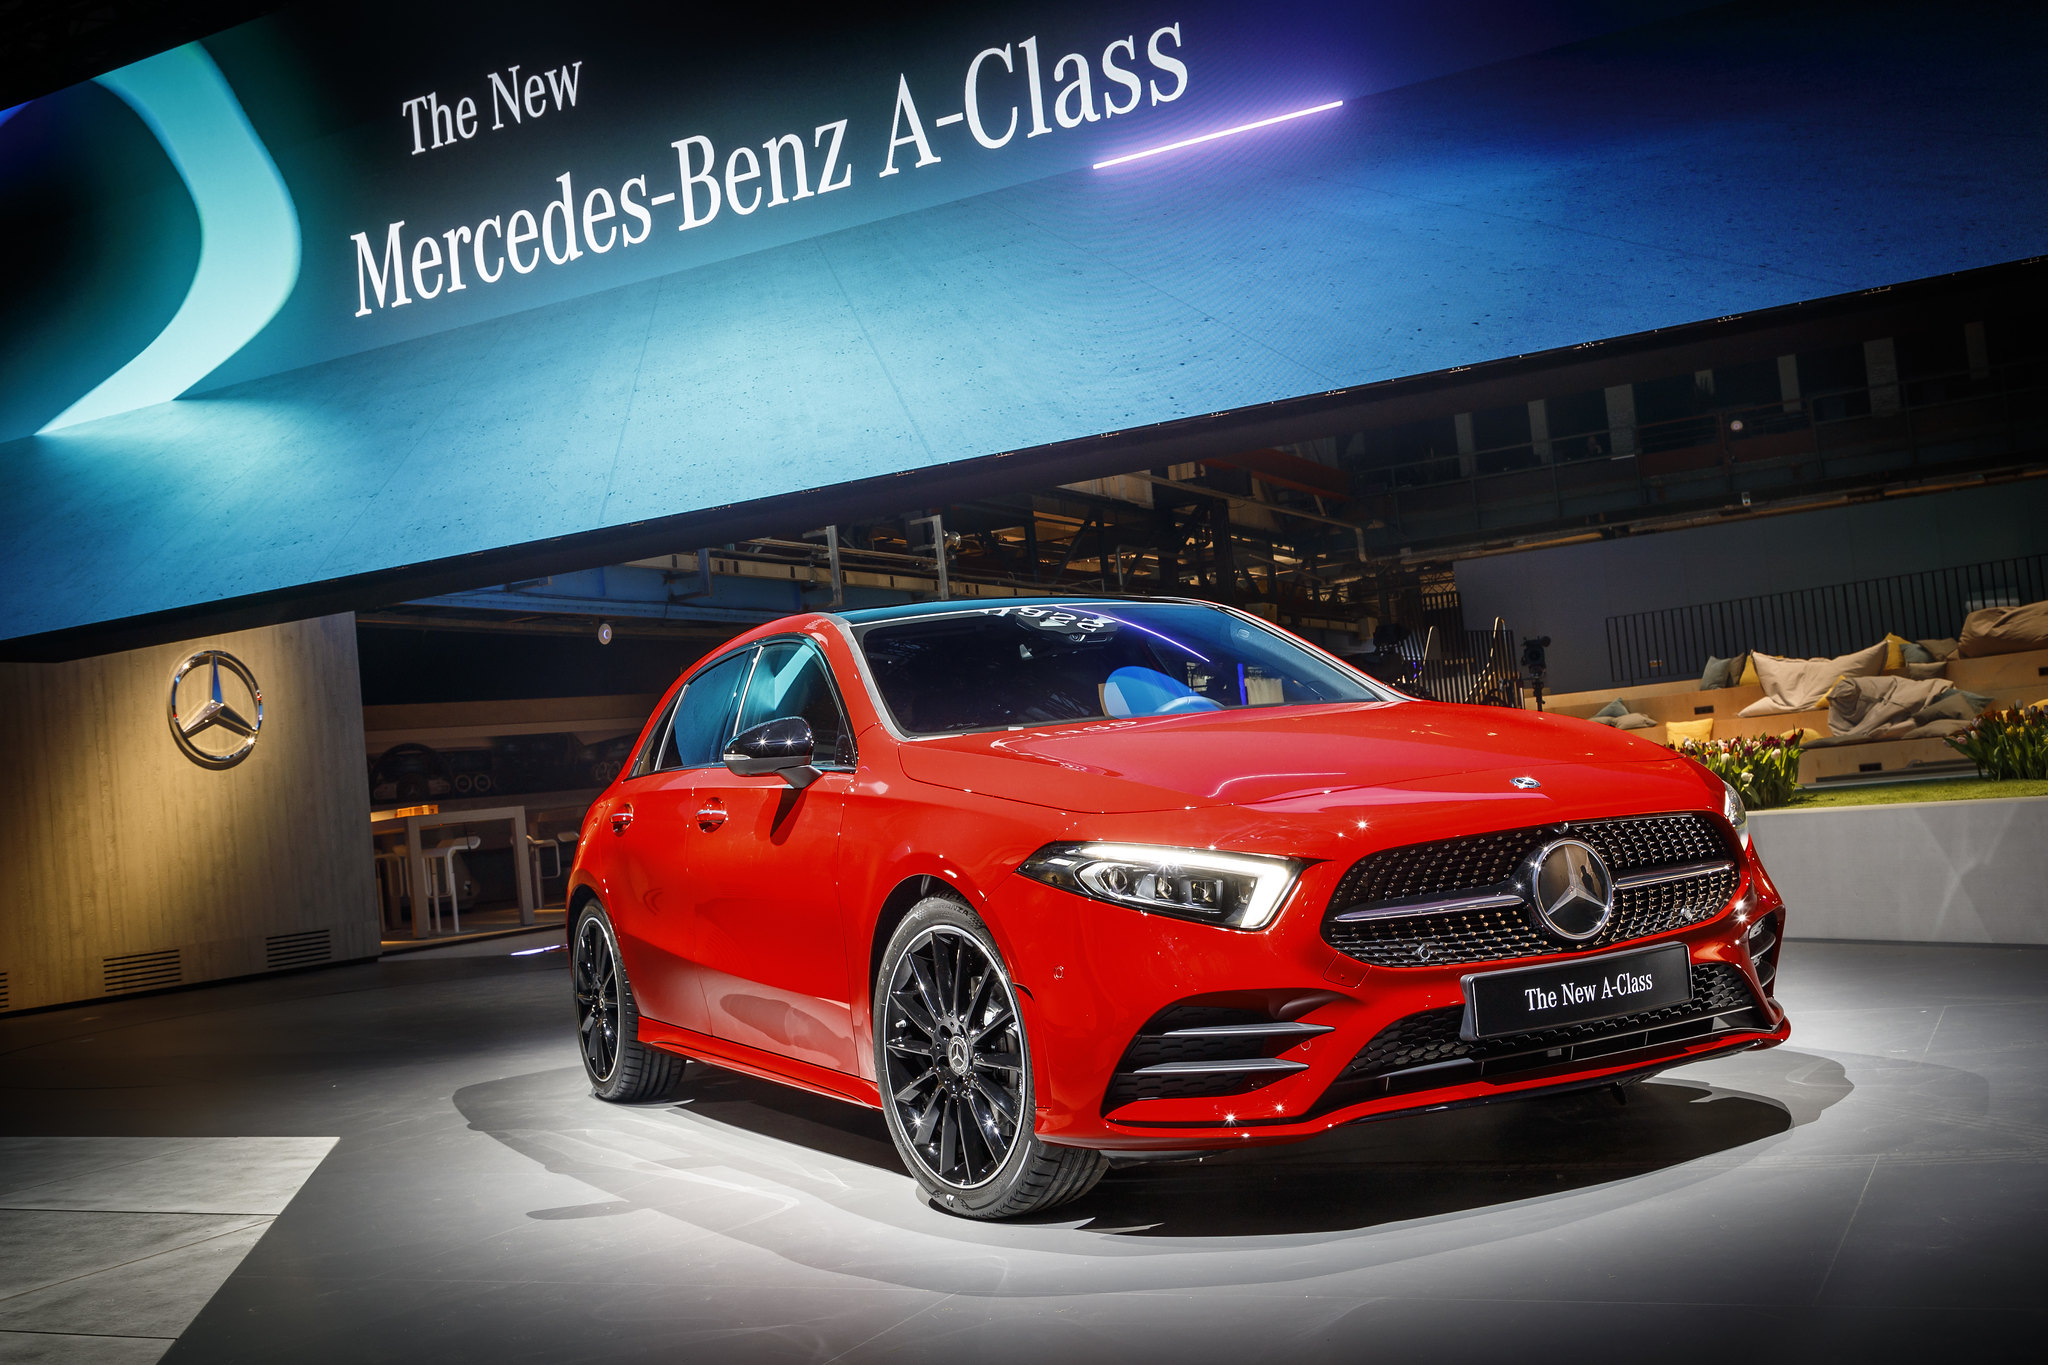 This is the new Mercedes-Benz A-Class